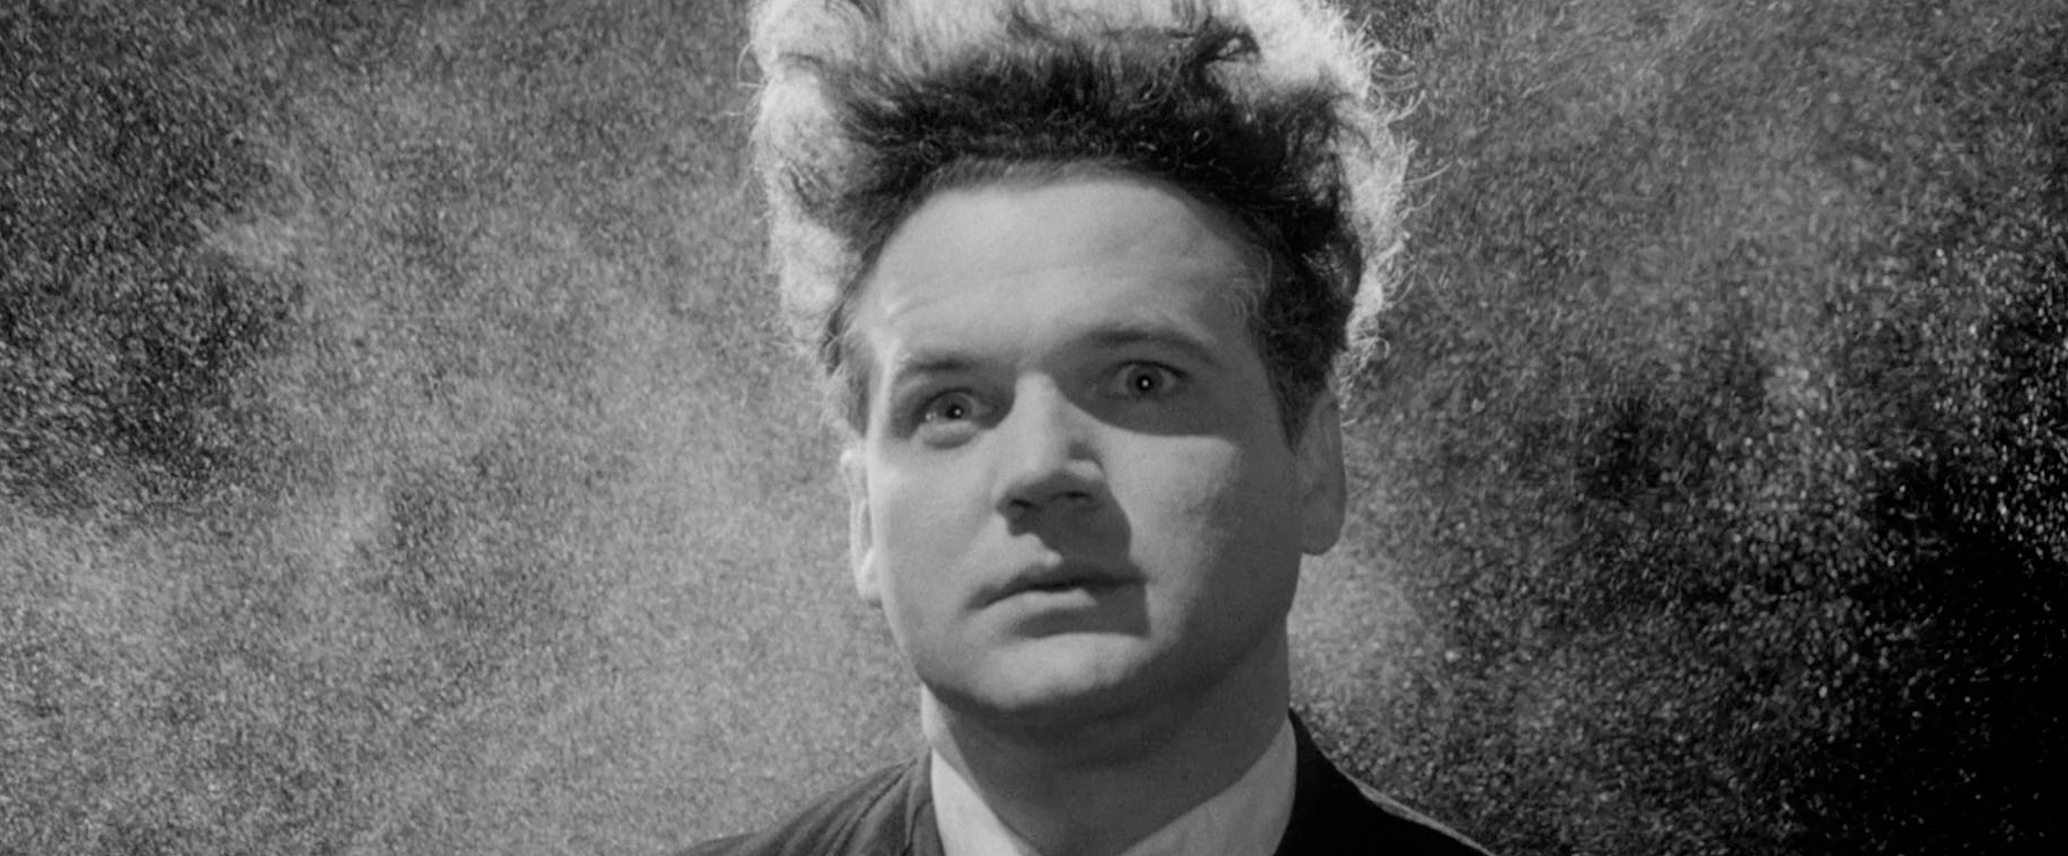 eraserhead essay Infused with an intoxicating mood and tone, david lynch's debut masterwork brings together many of his now familiar tropes, where sounds and images, much like a dream, are scarcely decipherable with a surrealist spirit, evoking early luis buñuel and the otherworldly films of jean cocteau, eraserhead.